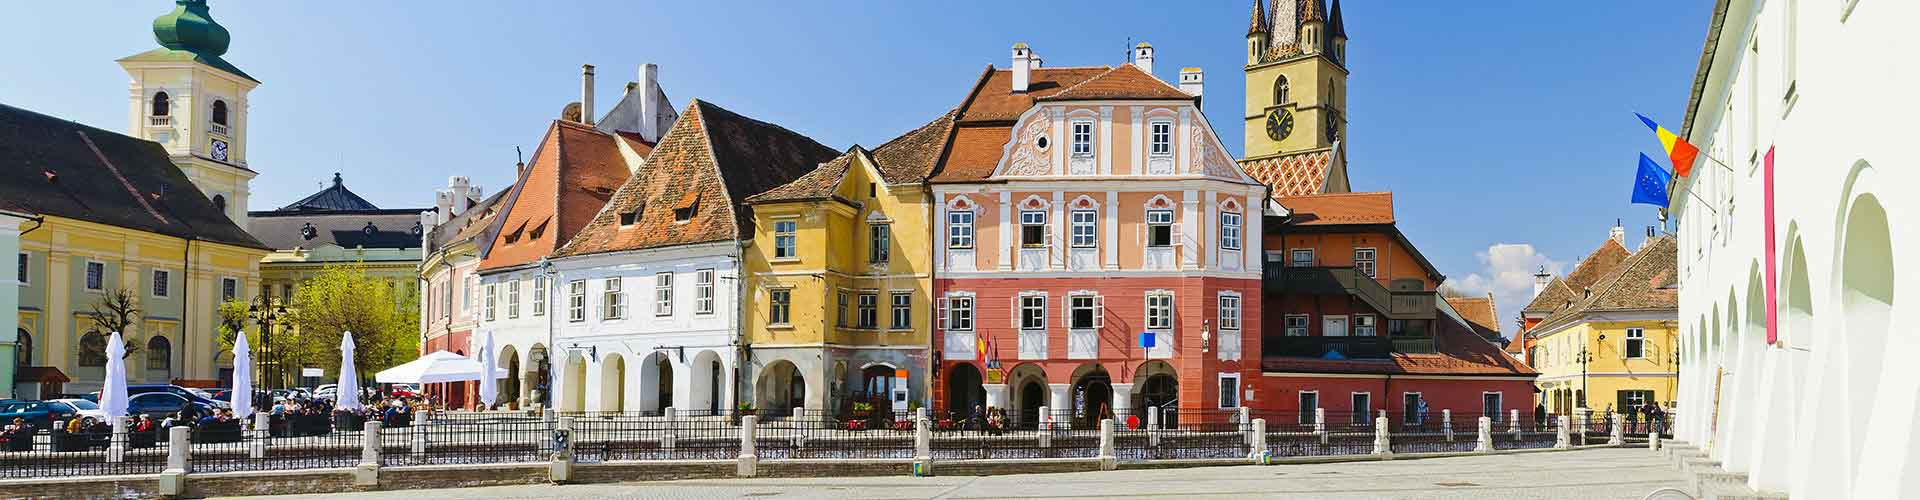 Sibiu – Hostels in Sibiu. Maps for Sibiu, Photos and Reviews for each hostel in Sibiu.